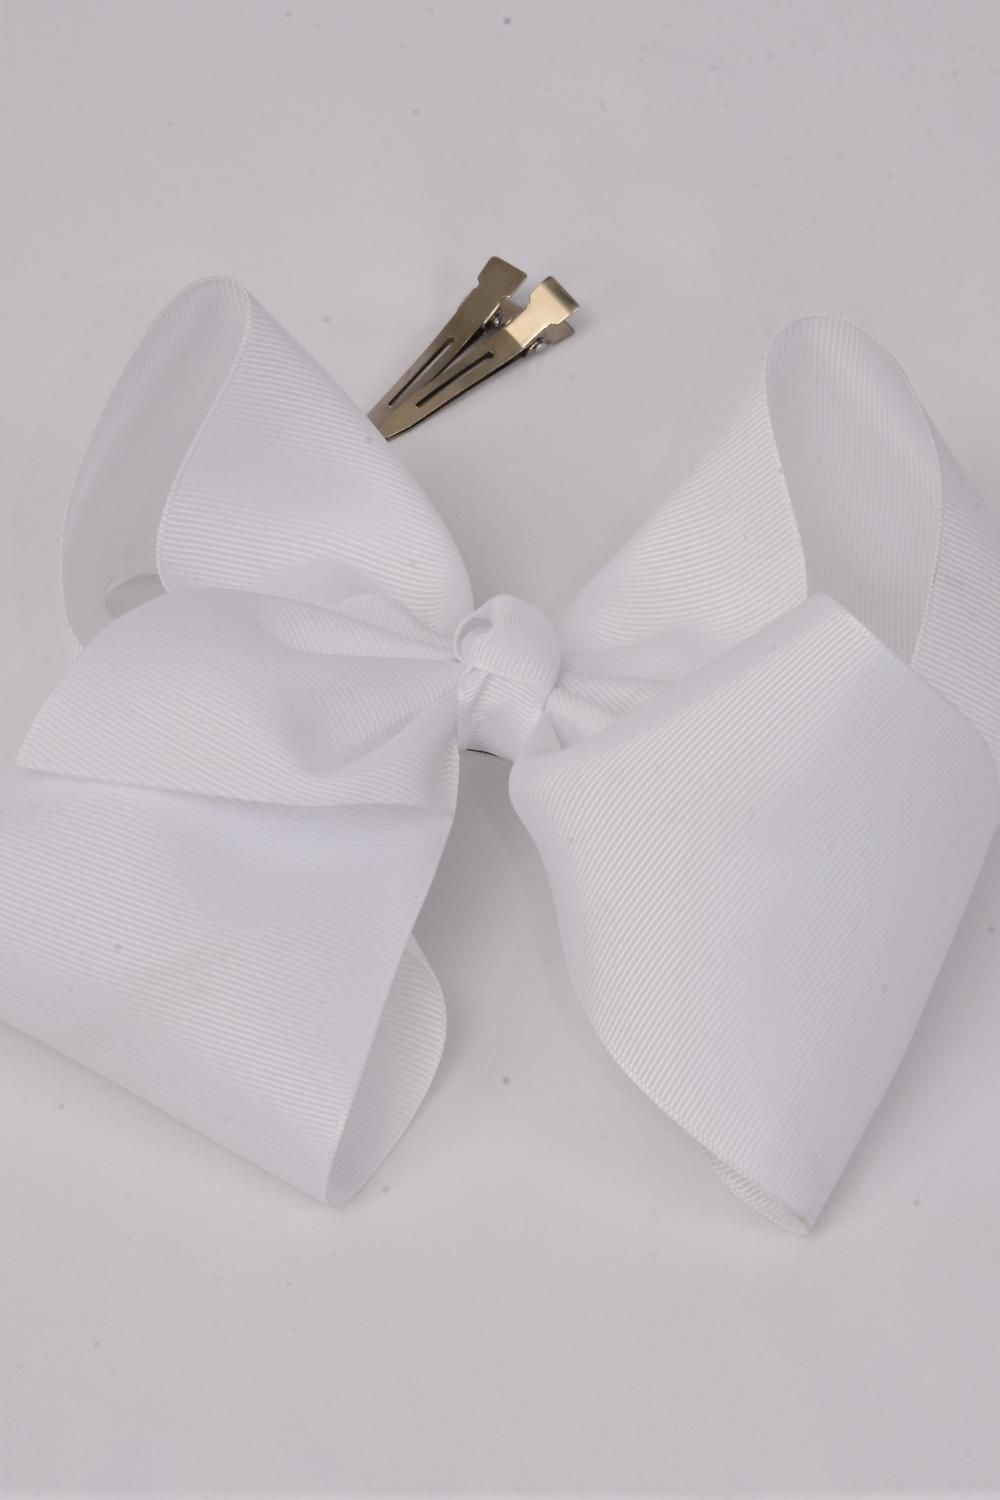 "Hair Bow Cheer Type Bow White Alligator Clip  Grosgrain Bow-tie/DZ **White** Size-8""x 7"" Wide,Alligator Clip,Clip Strip & UPC Code"